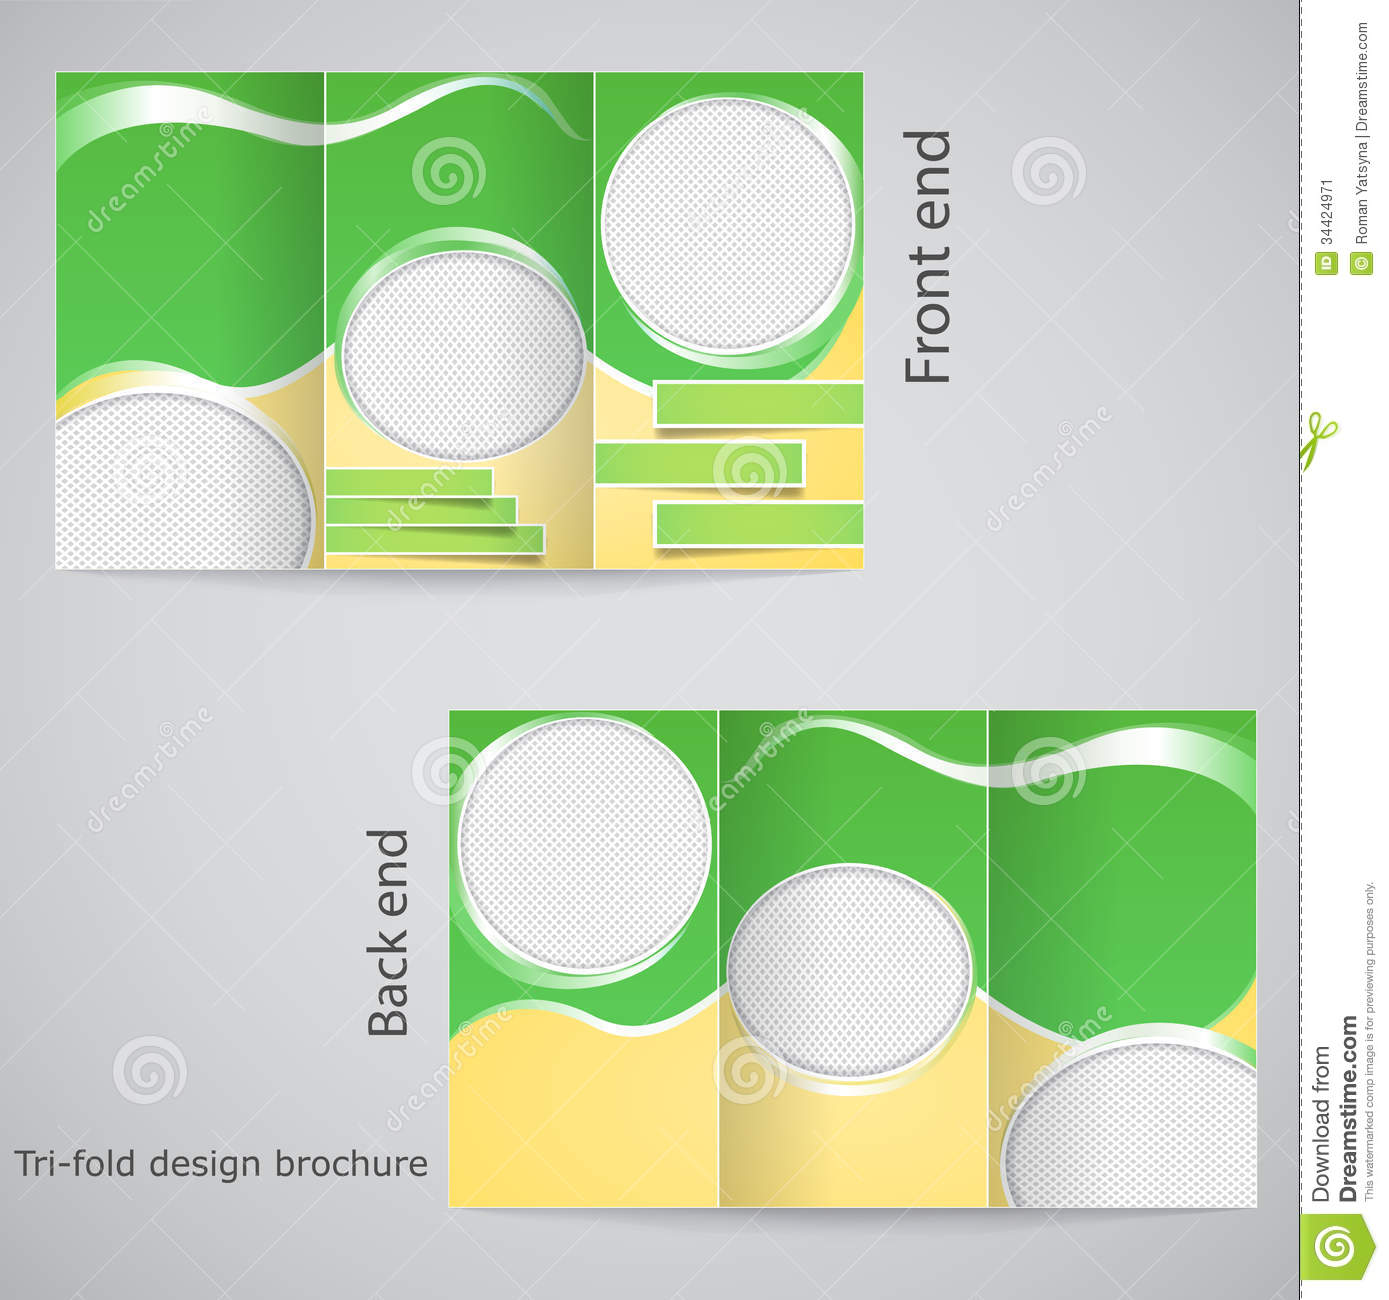 Tri fold brochure design stock vector illustration of for Free brochure layout template